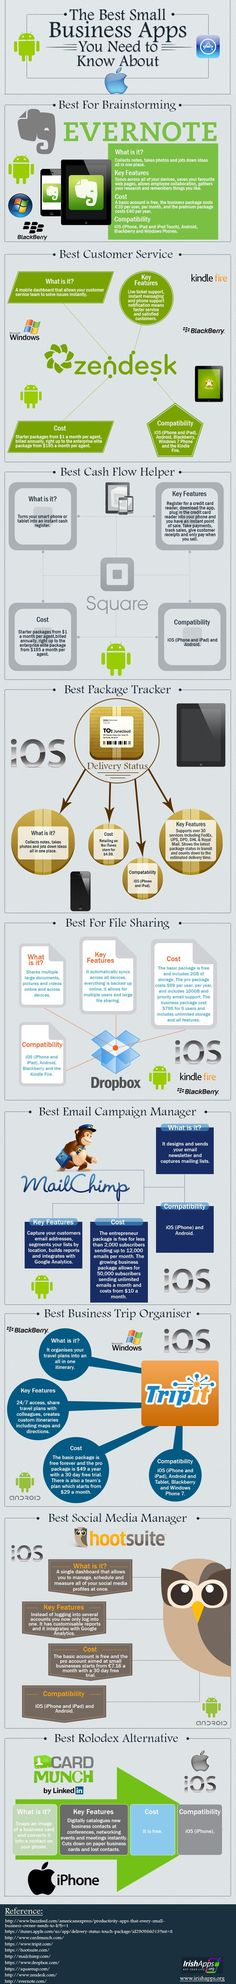 Infographic: Small Business Apps - http://www.kbradyservice.com/apps/blog/show/40018216-infographic-small-business-apps